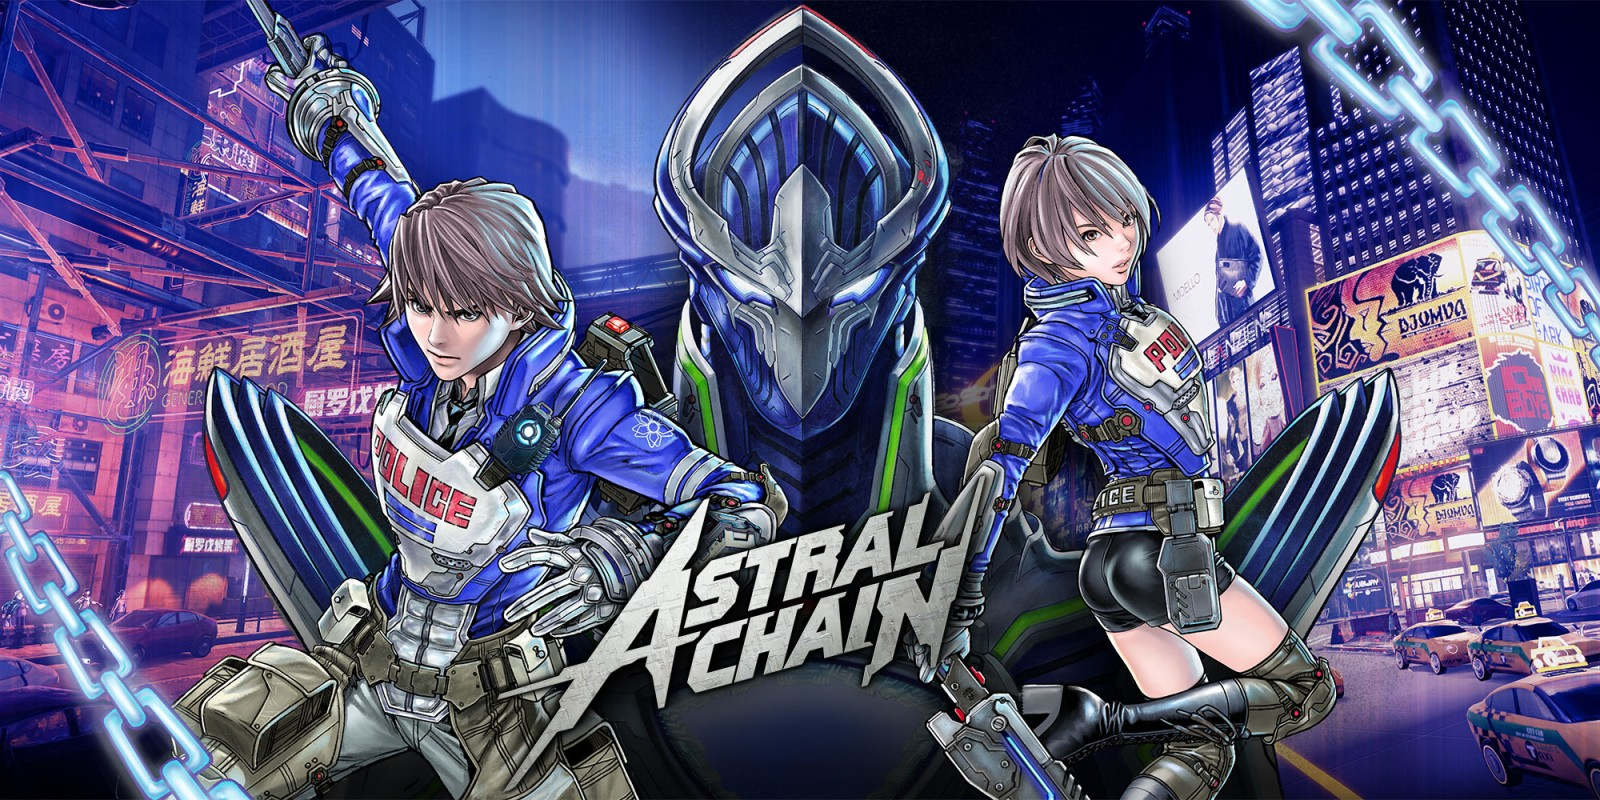 This week's European downloads - August 29 (Astral Chain, Vambrace and more)